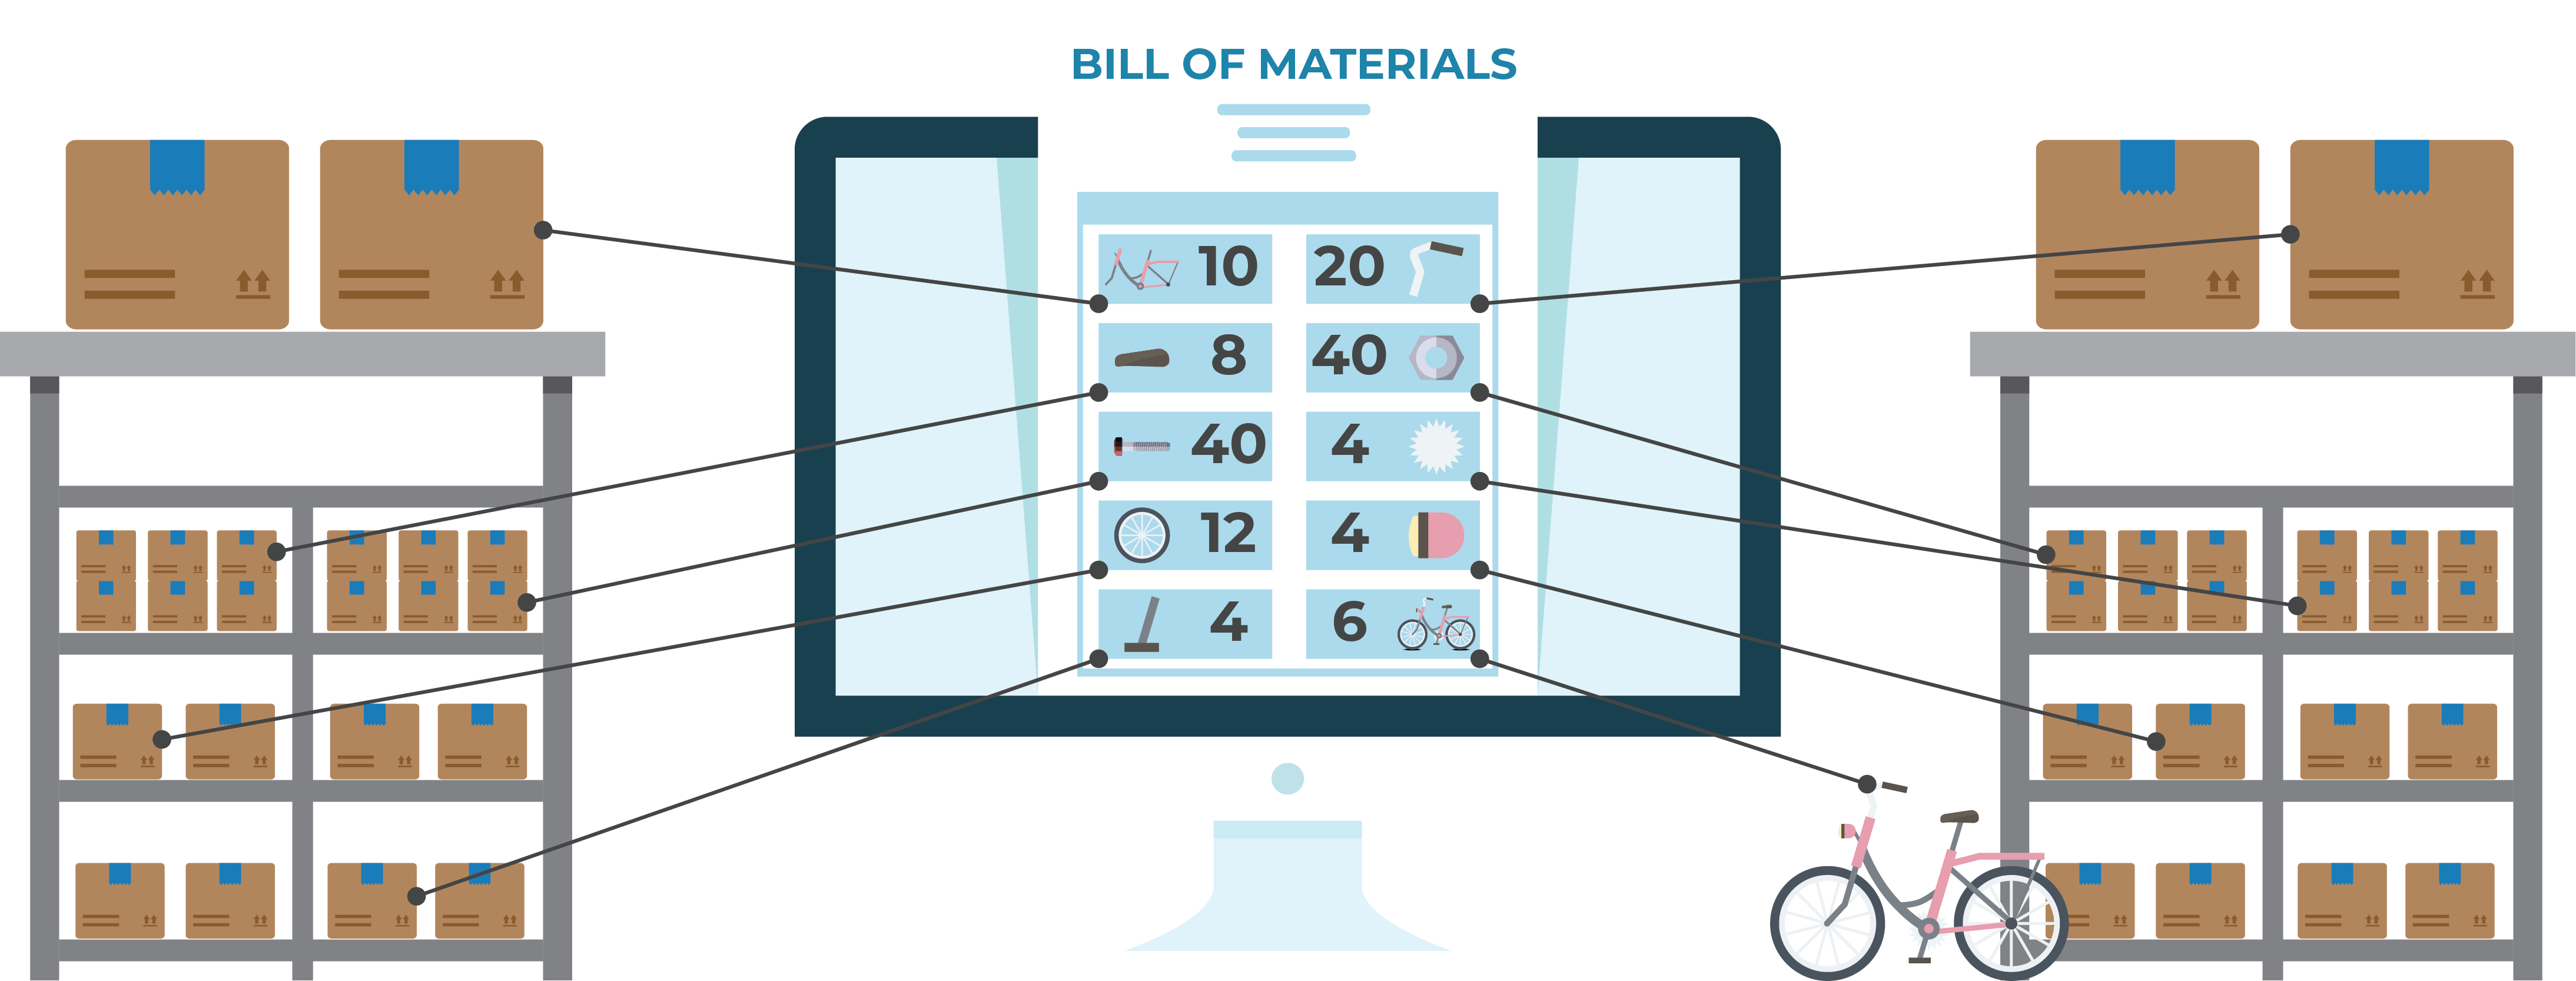 Bill of Materials Software Manufacturing Warehouse Order Management